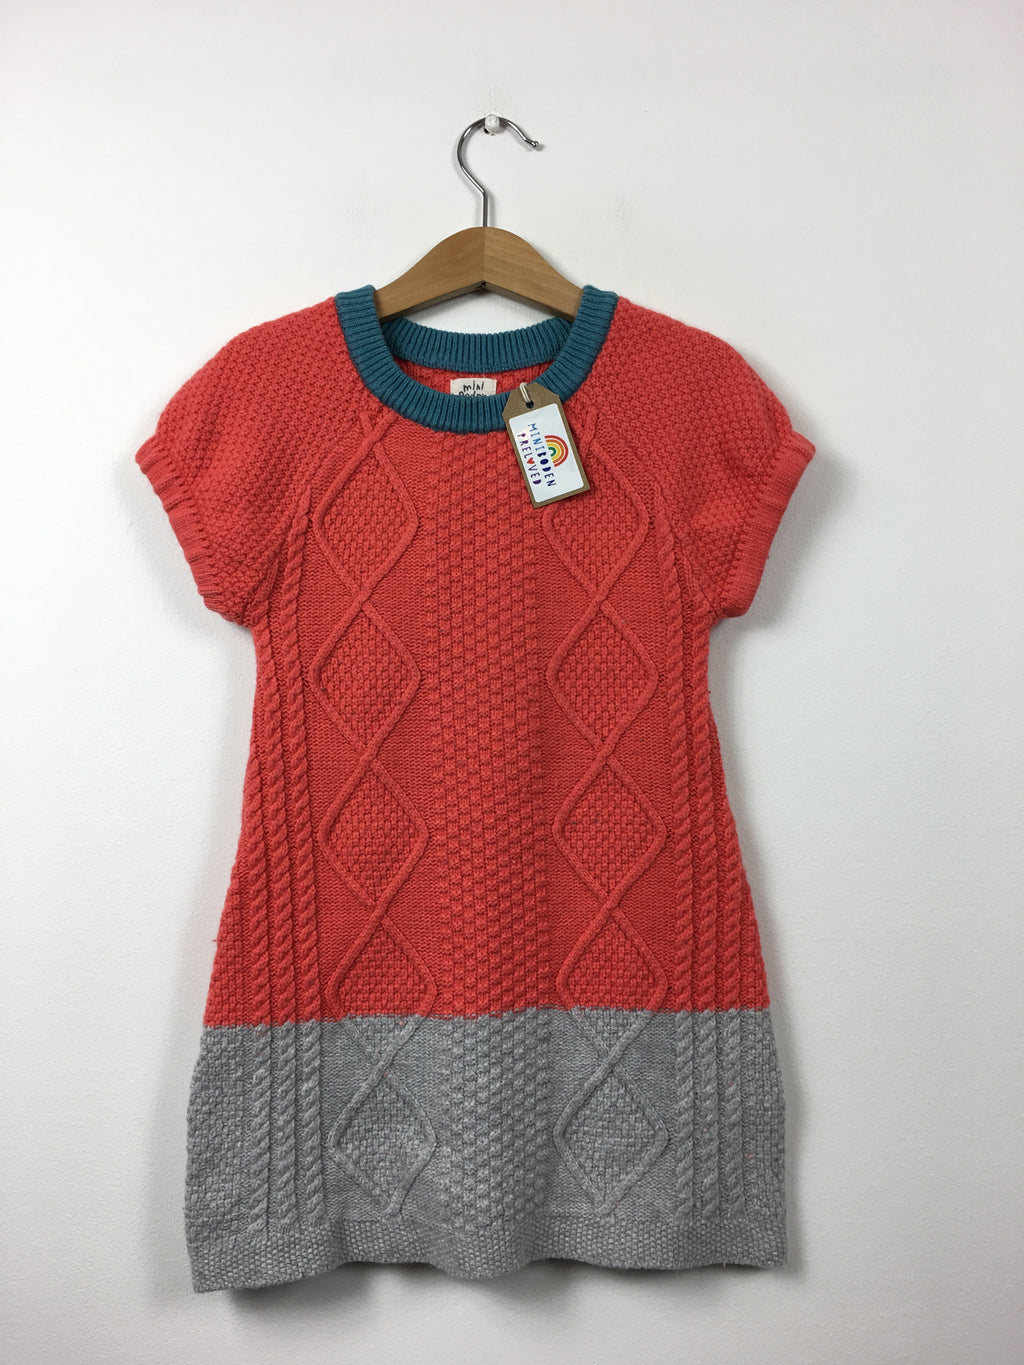 Colour Block Knitted Dress (3-4 Years)